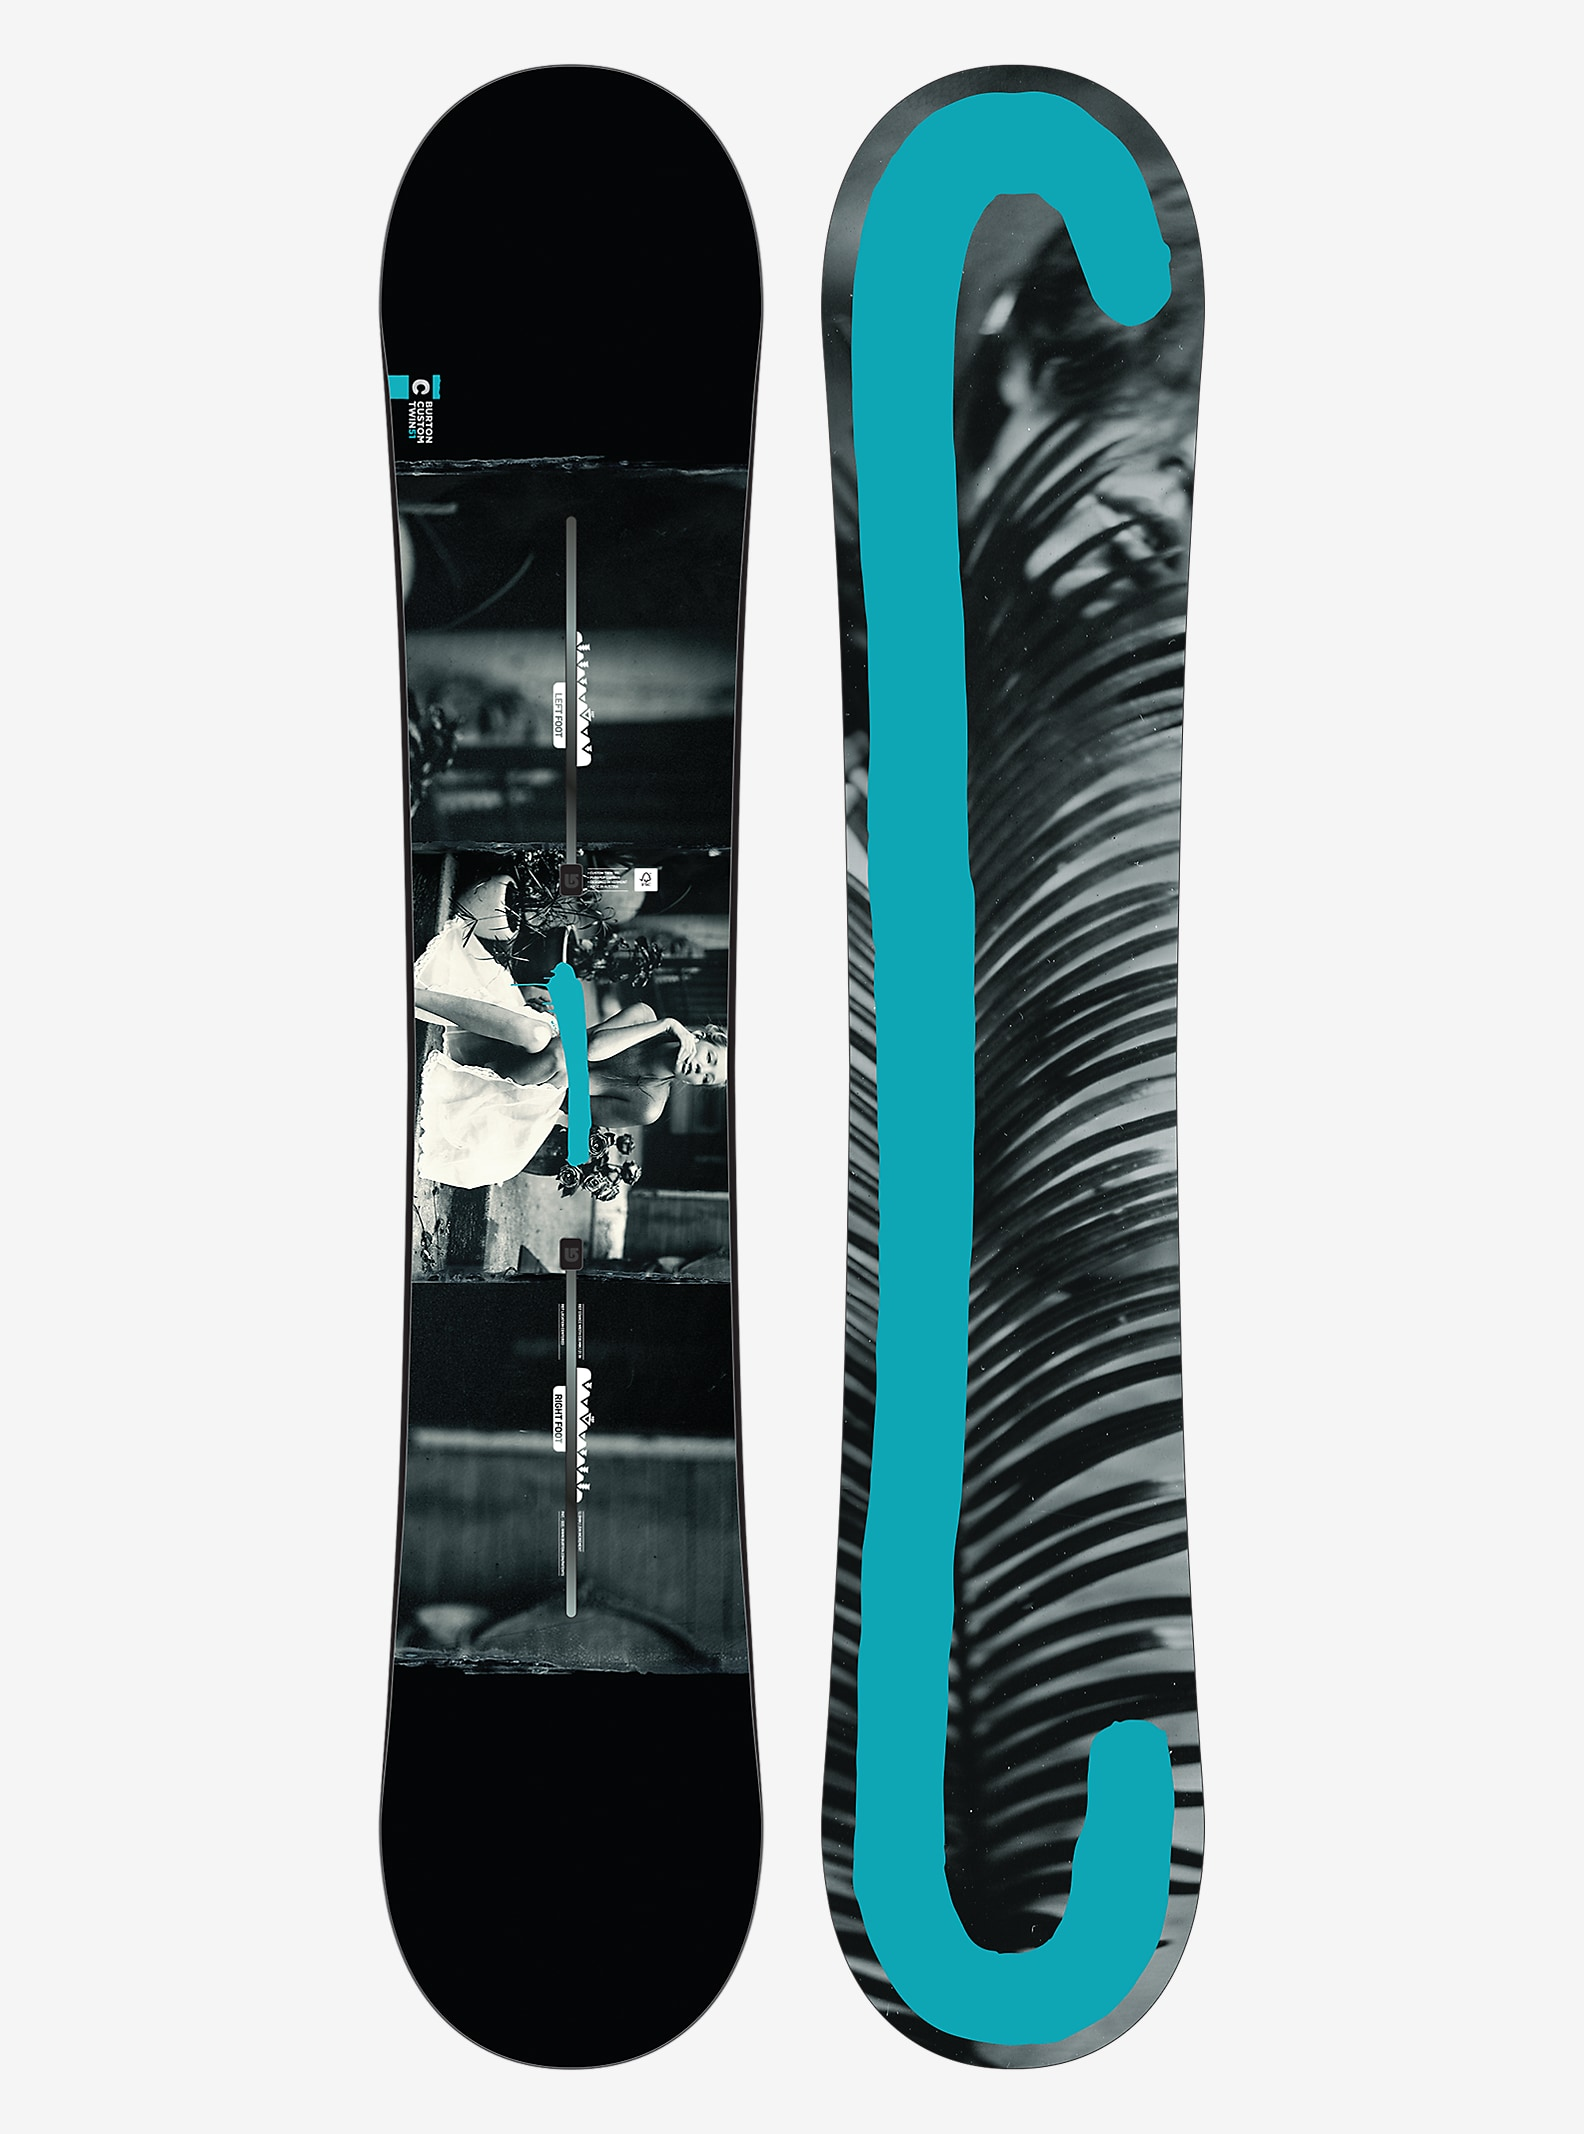 Burton Custom Twin Snowboard shown in 151